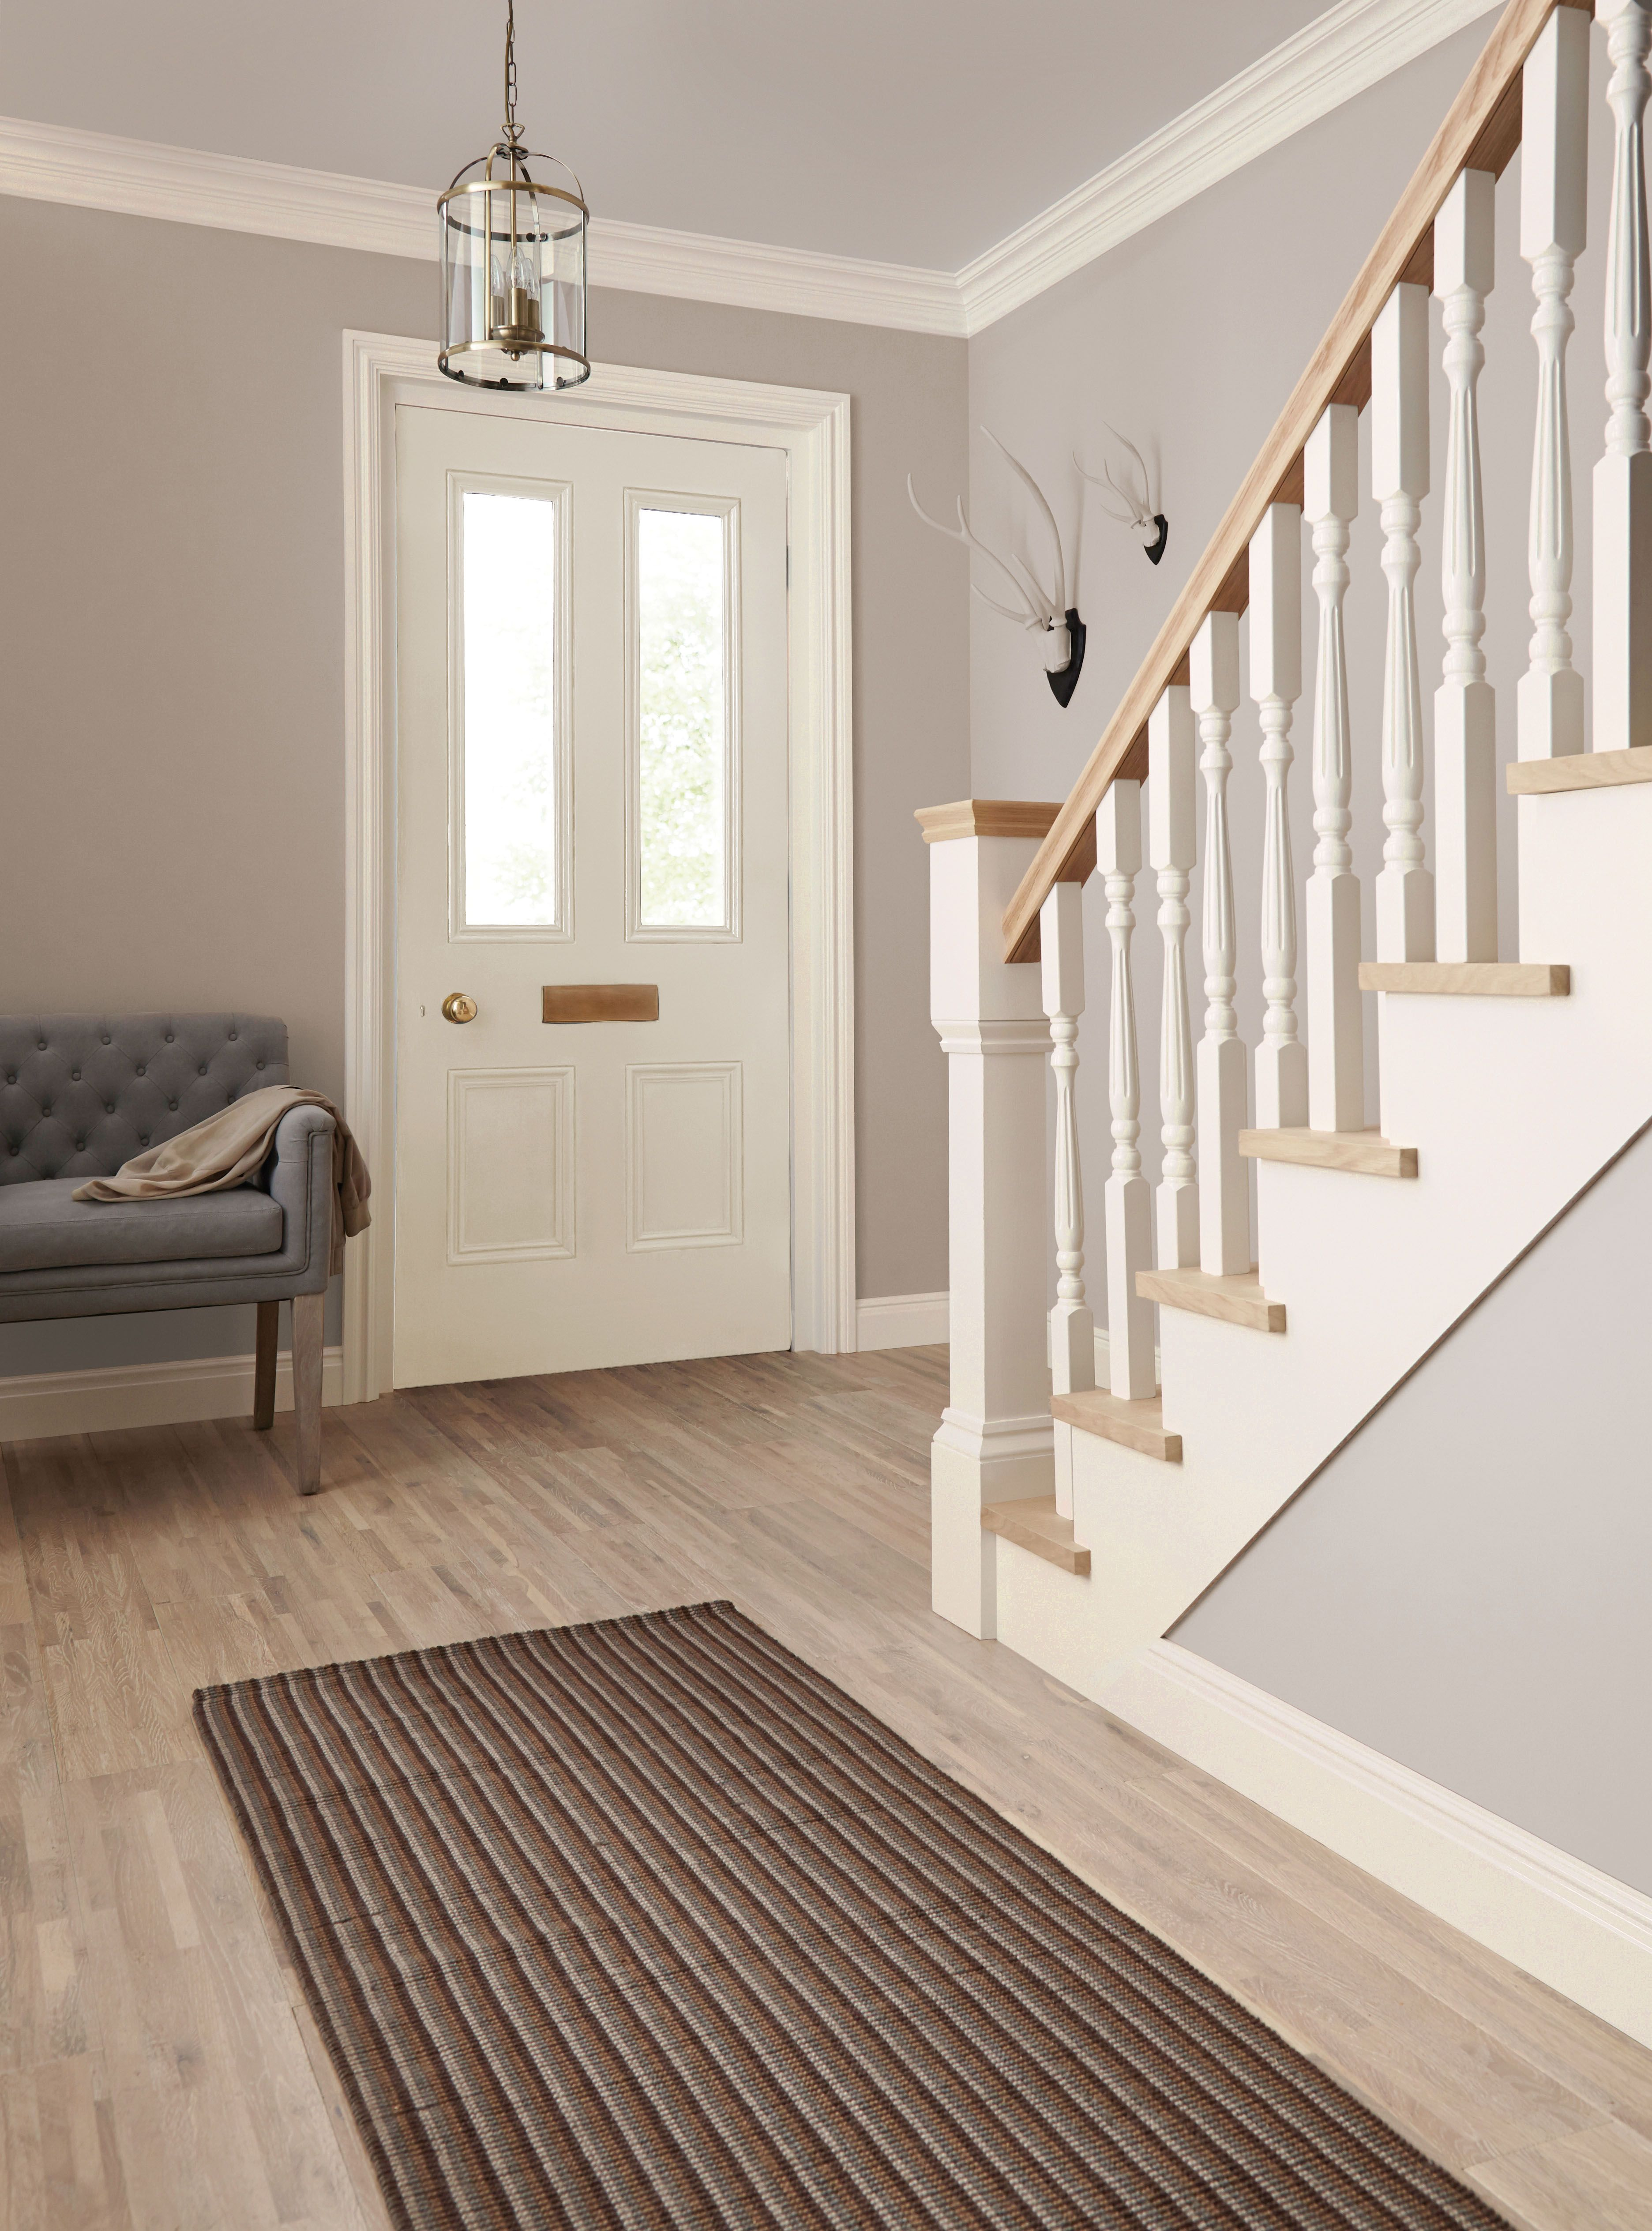 Possible hallway or bedroom aged white from our new Hallway colour scheme ideas